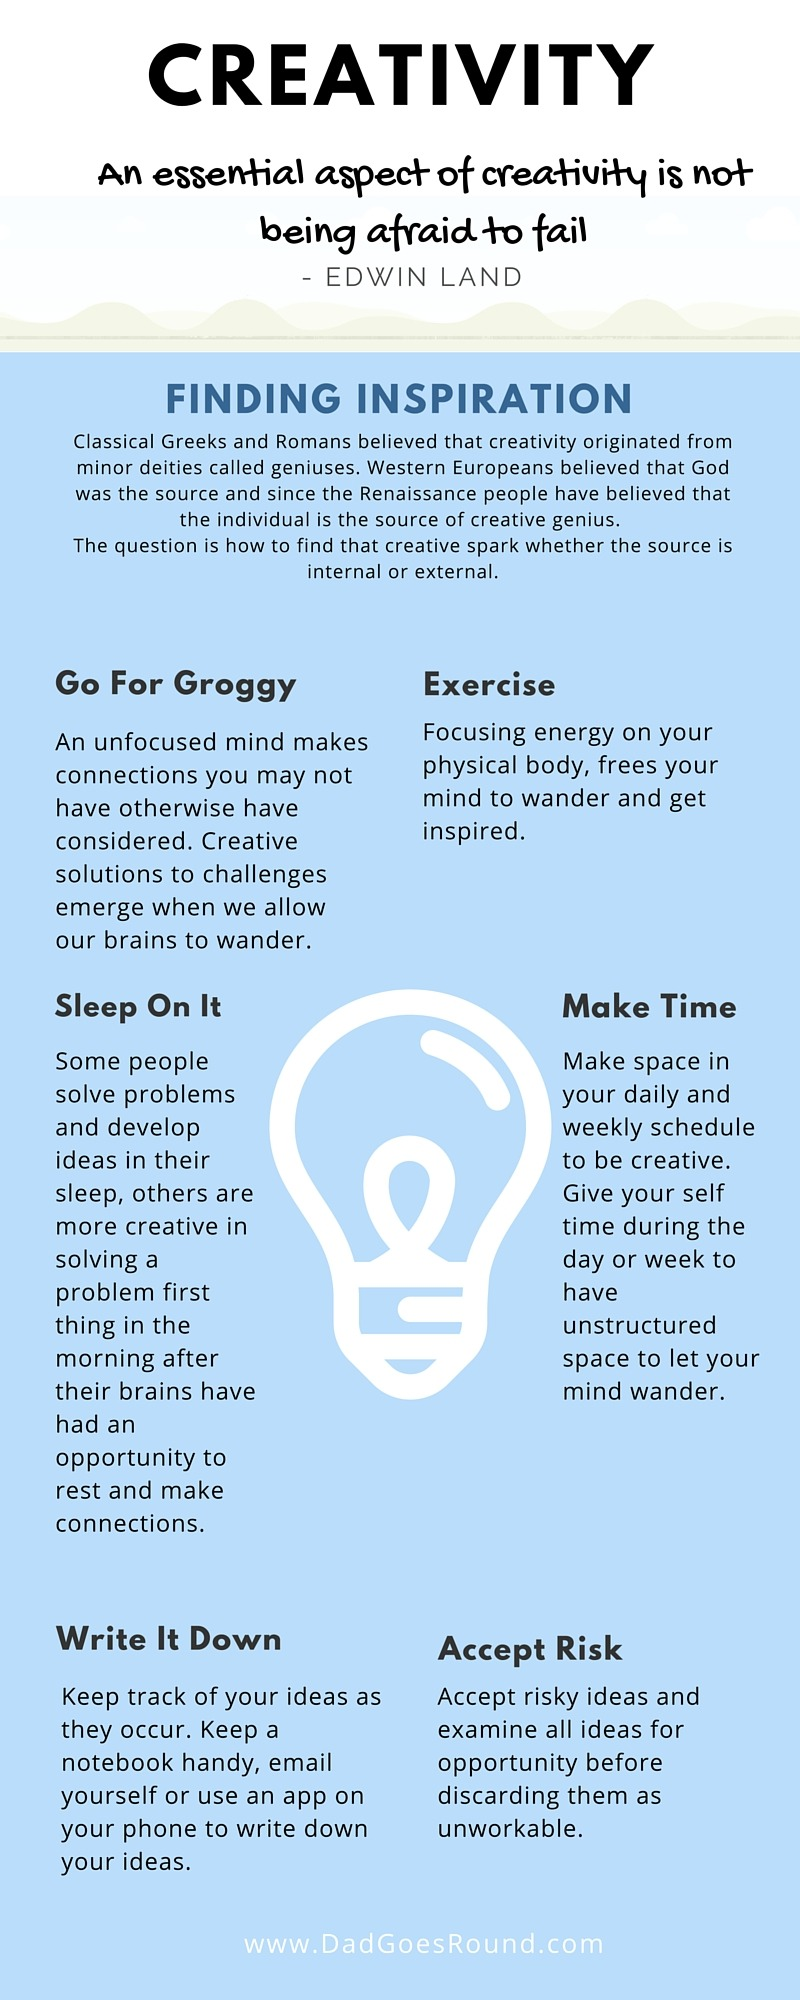 Six tips for finding inspiration: Get groggy, Exercise, Sleep on it, Schedule time for creativity, Write it down and Accept risk.  | DadGoesRound